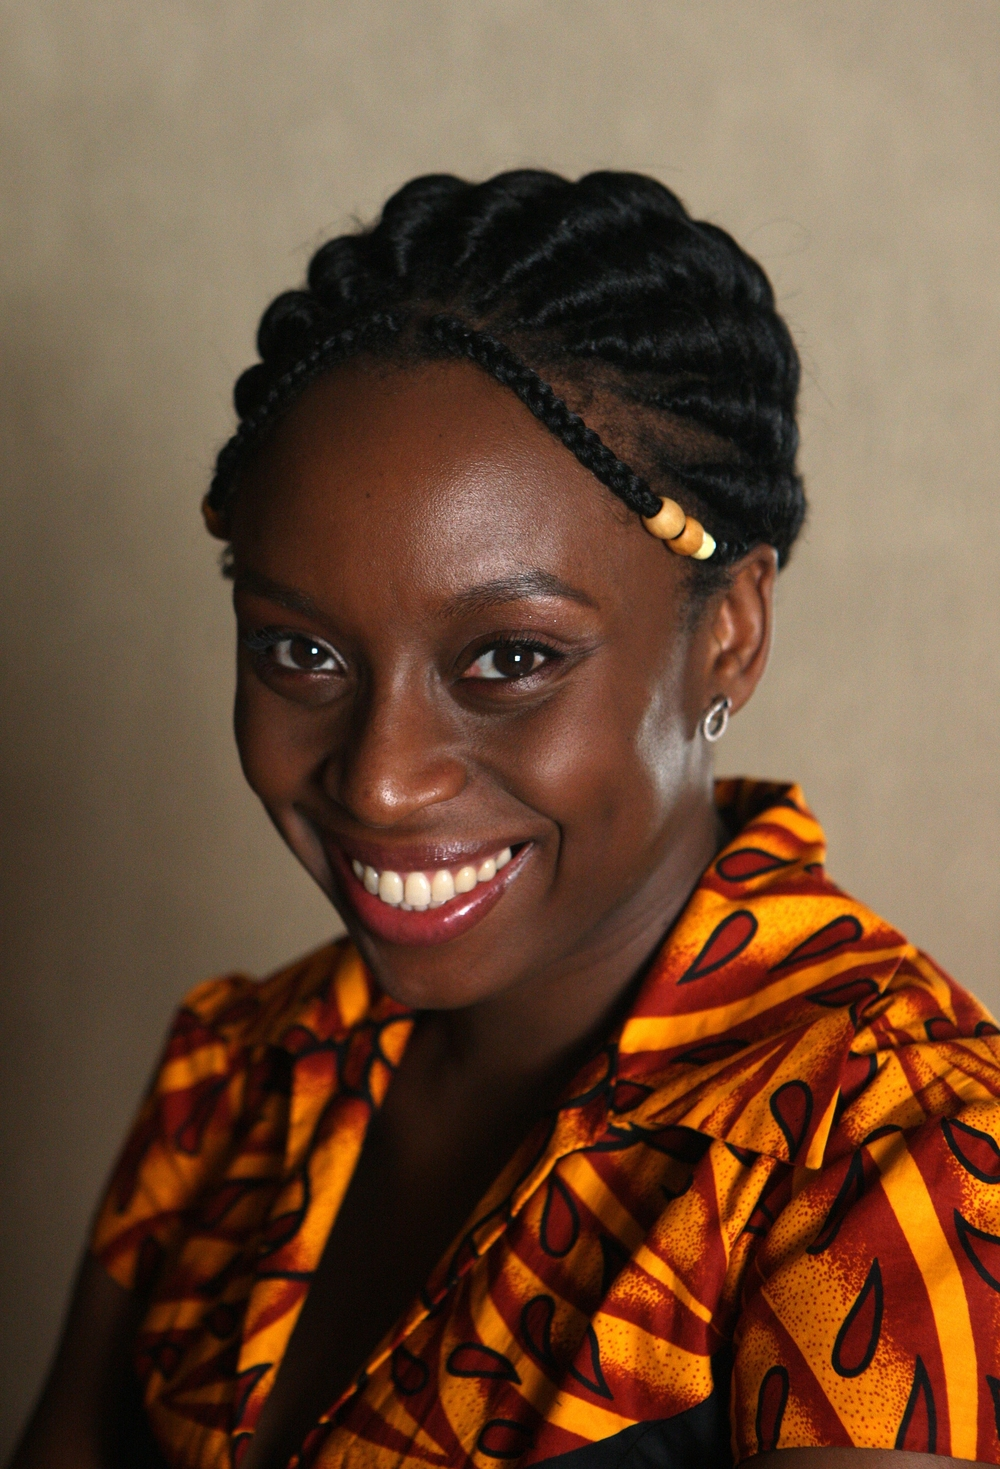 Chimamanda Adichie (Source: Wikipedia)